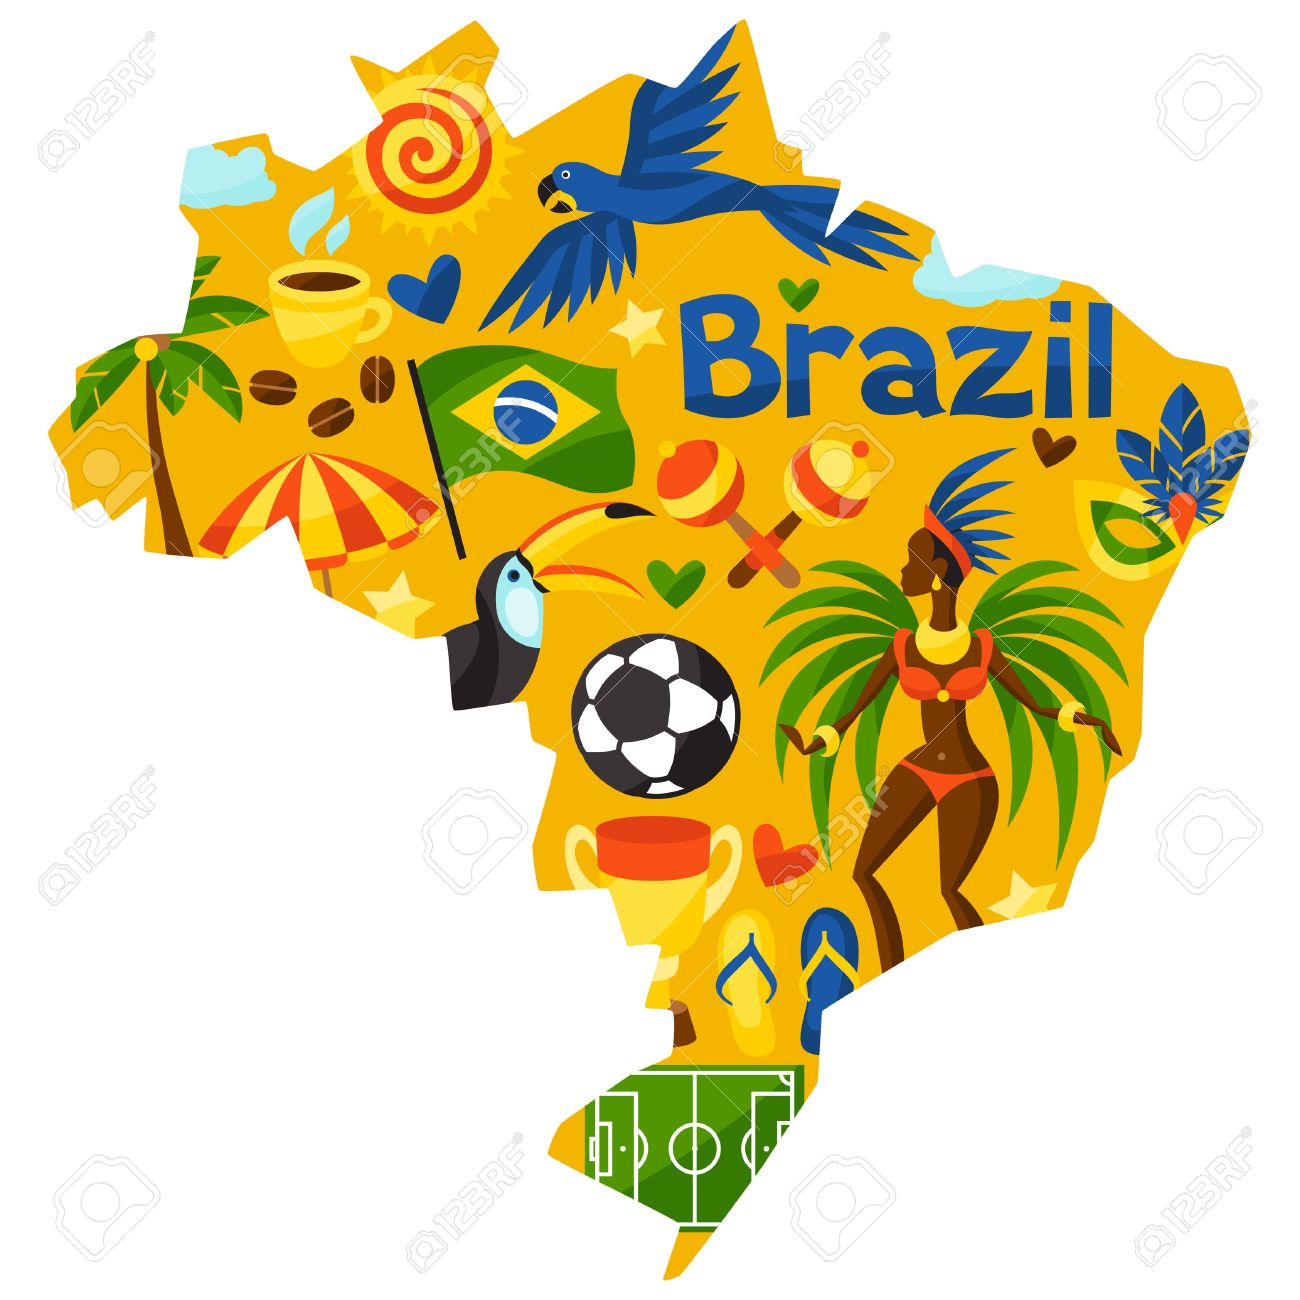 Brazil Map With Stylized Objects And Cultural Symbols Royalty - Brazil map